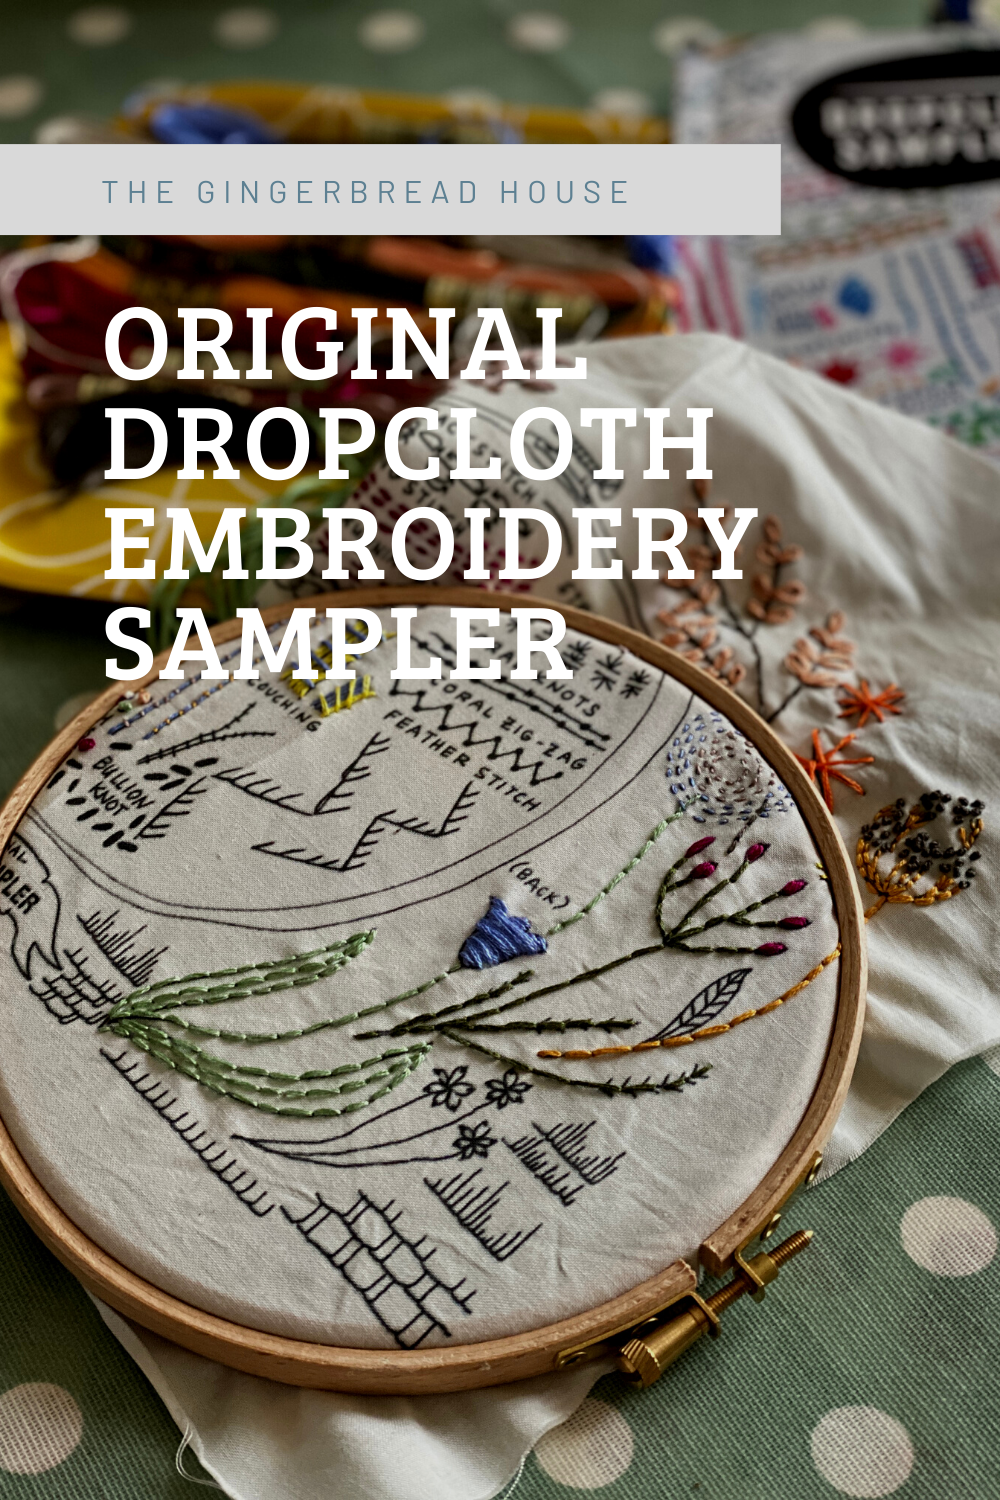 Stitching the Original Dropcloth Embroidery Sampler